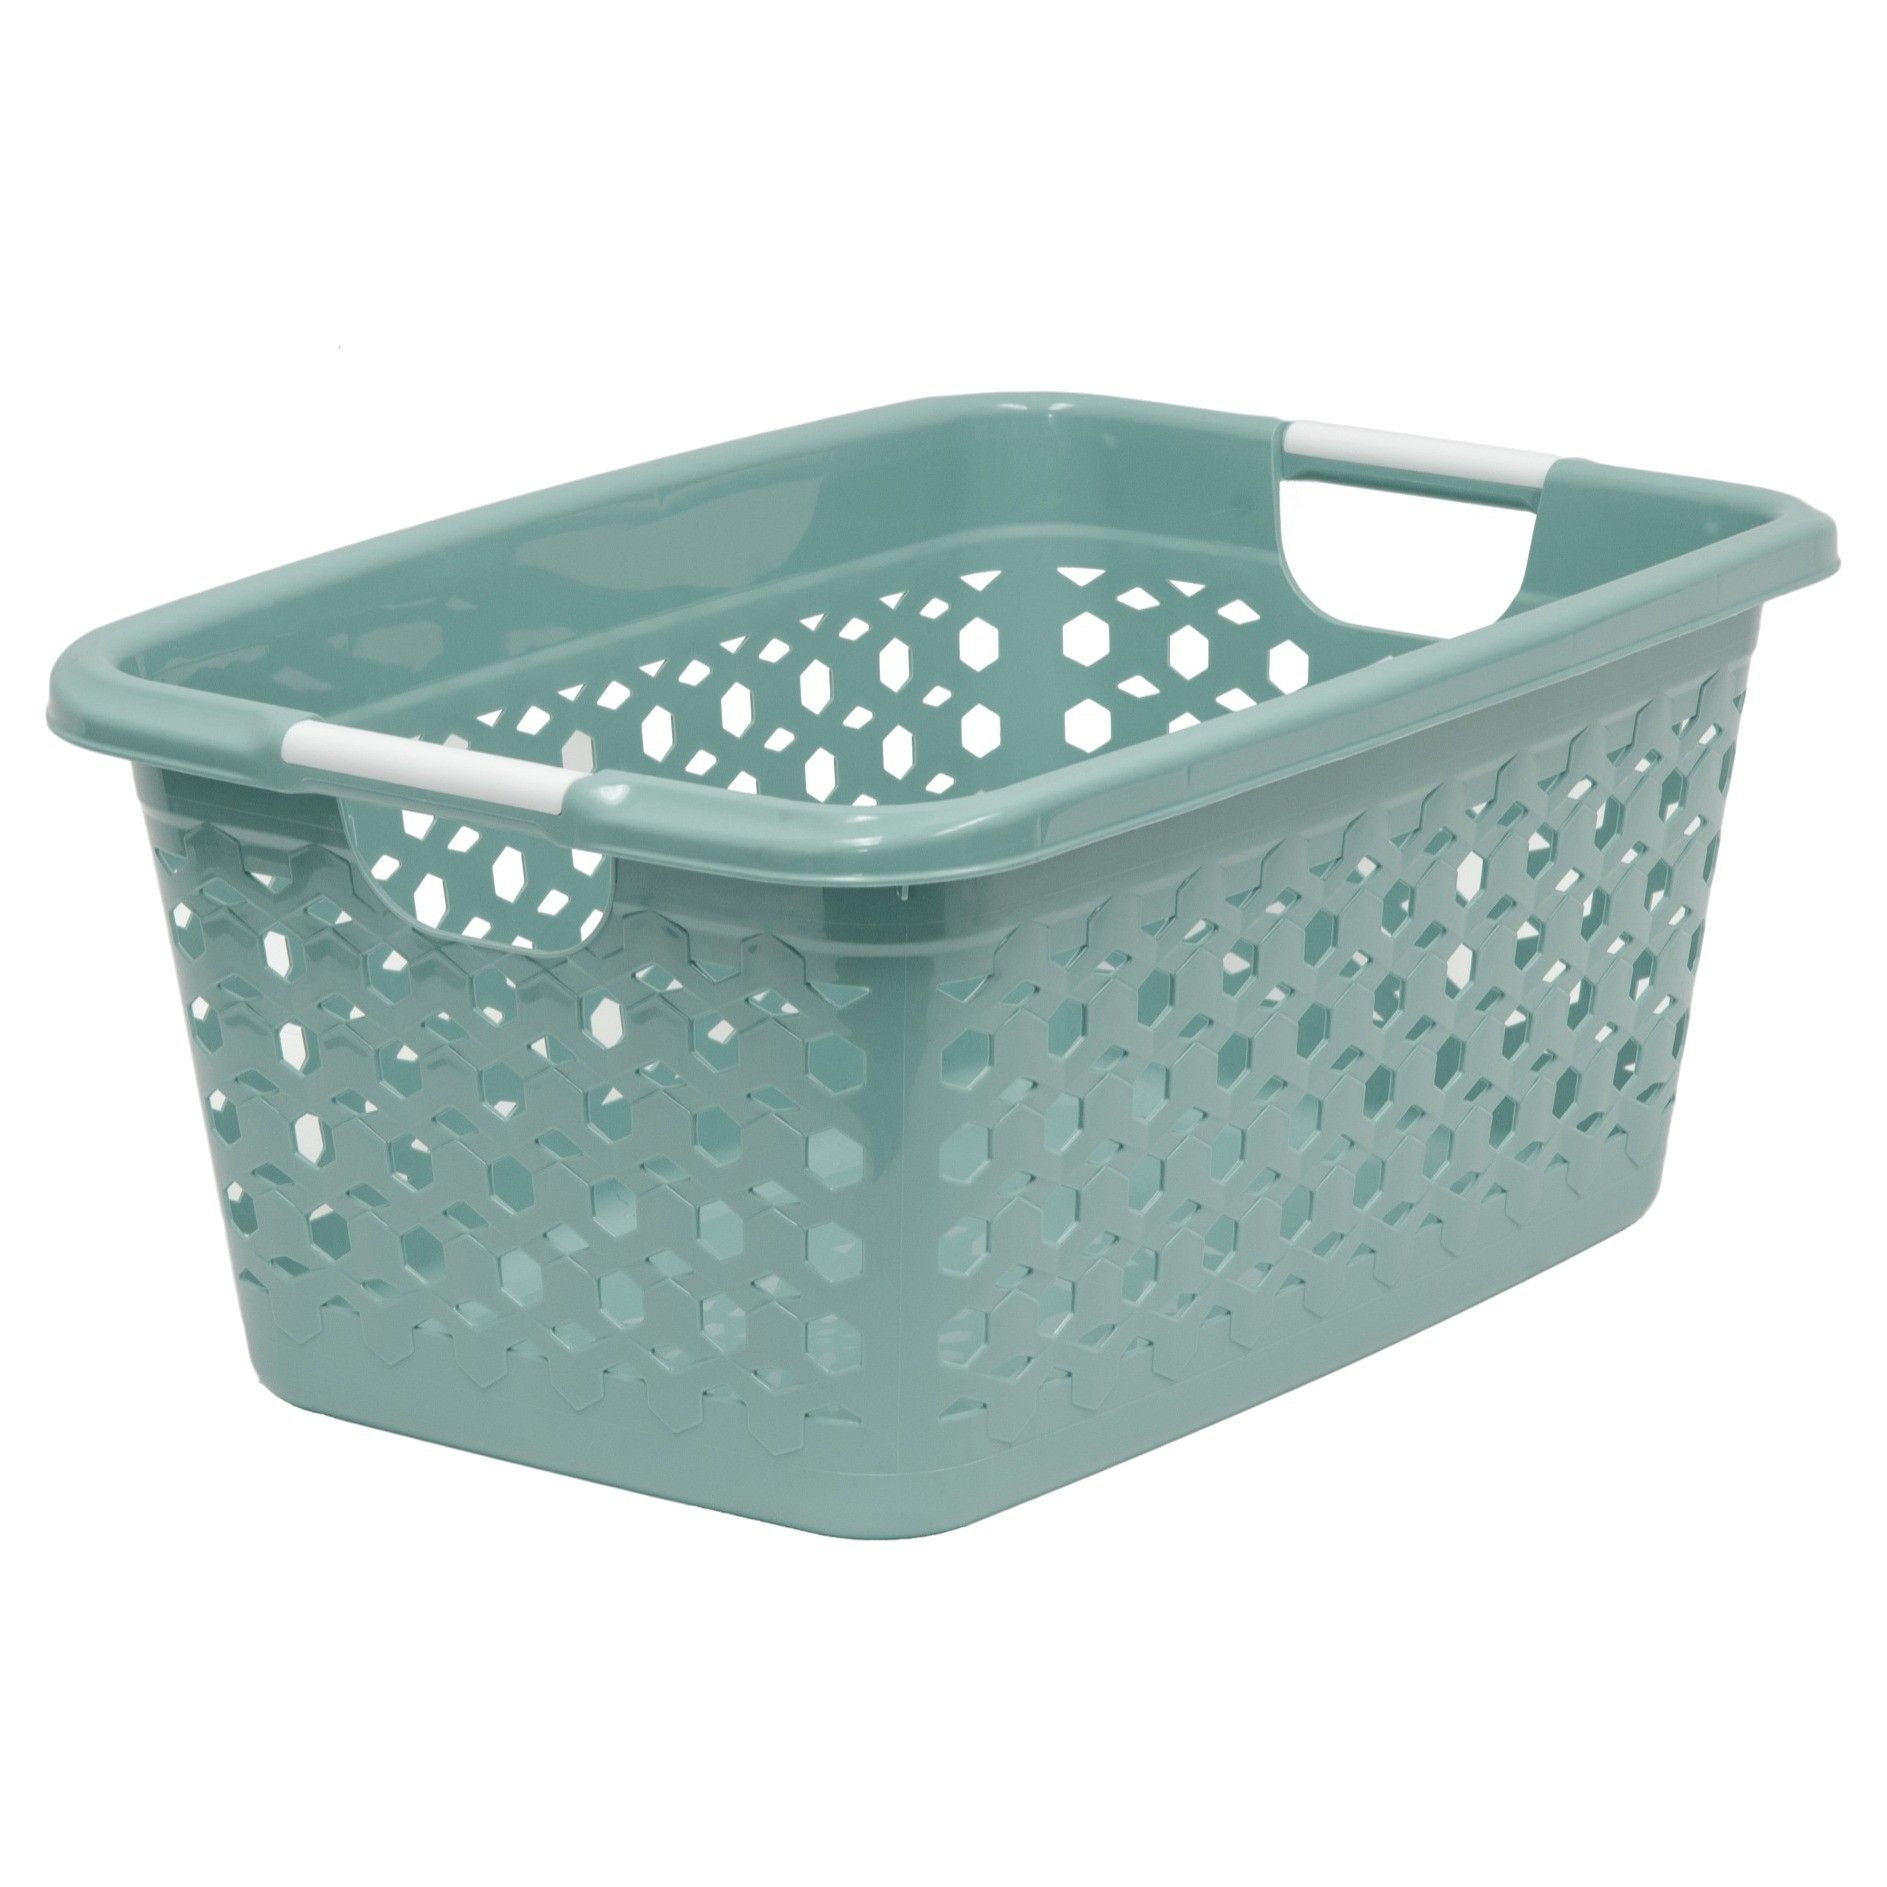 Home Logic Laundry Basket Teal Target Laundry Basket Green